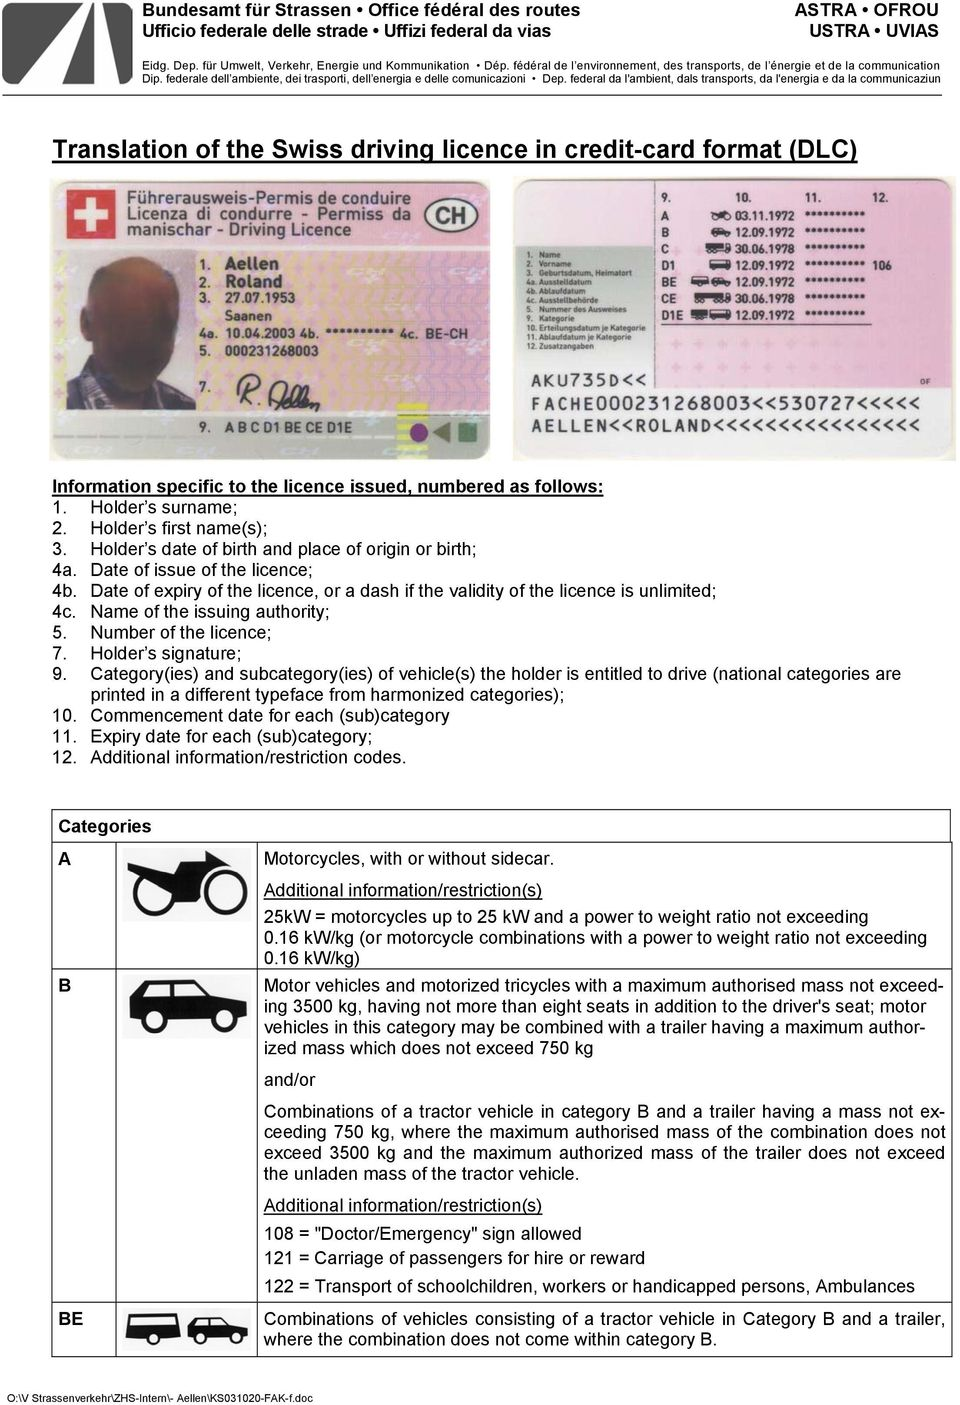 federal da l'ambient, dals transports, da l'energia e da la communicaziun Translation of the Swiss driving licence in credit-card format (DLC) Information specific to the licence issued, numbered as